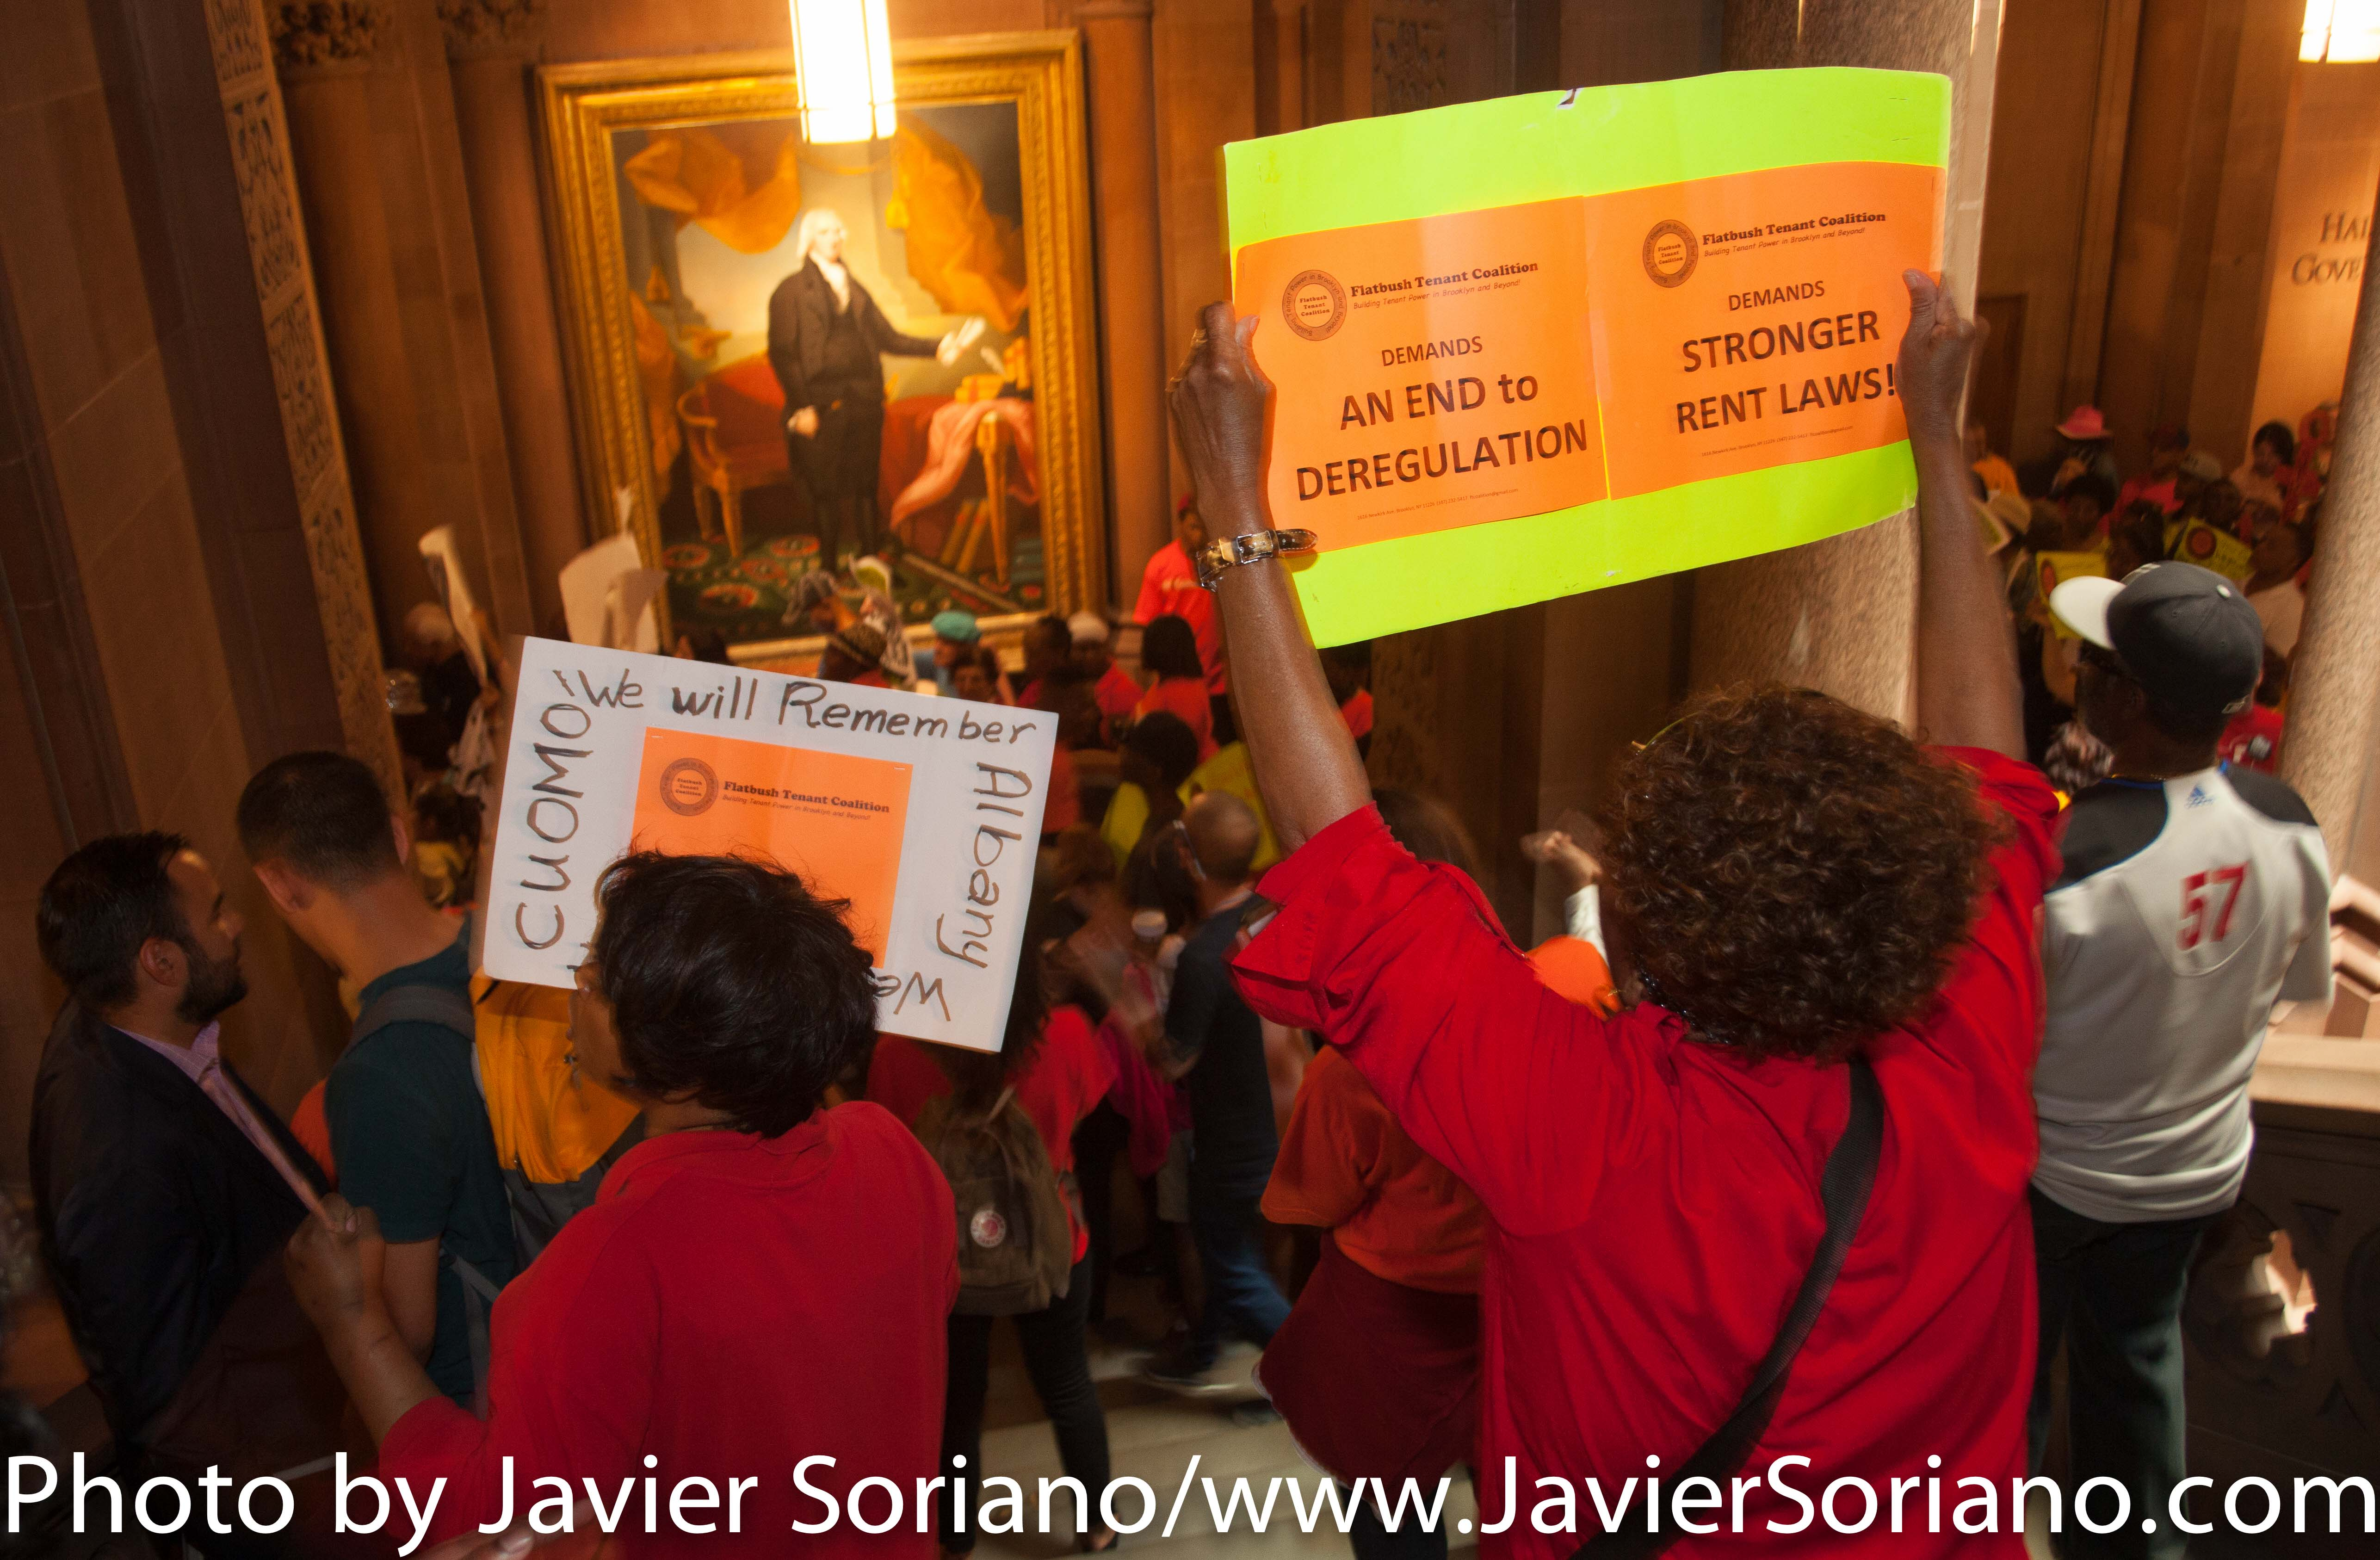 6/24/2015 - The Capitol in Albany, Capital of New York State. Demonstrators demand stronger rent laws. Photo by Javier Soriano/http://www.JavierSoriano.com/